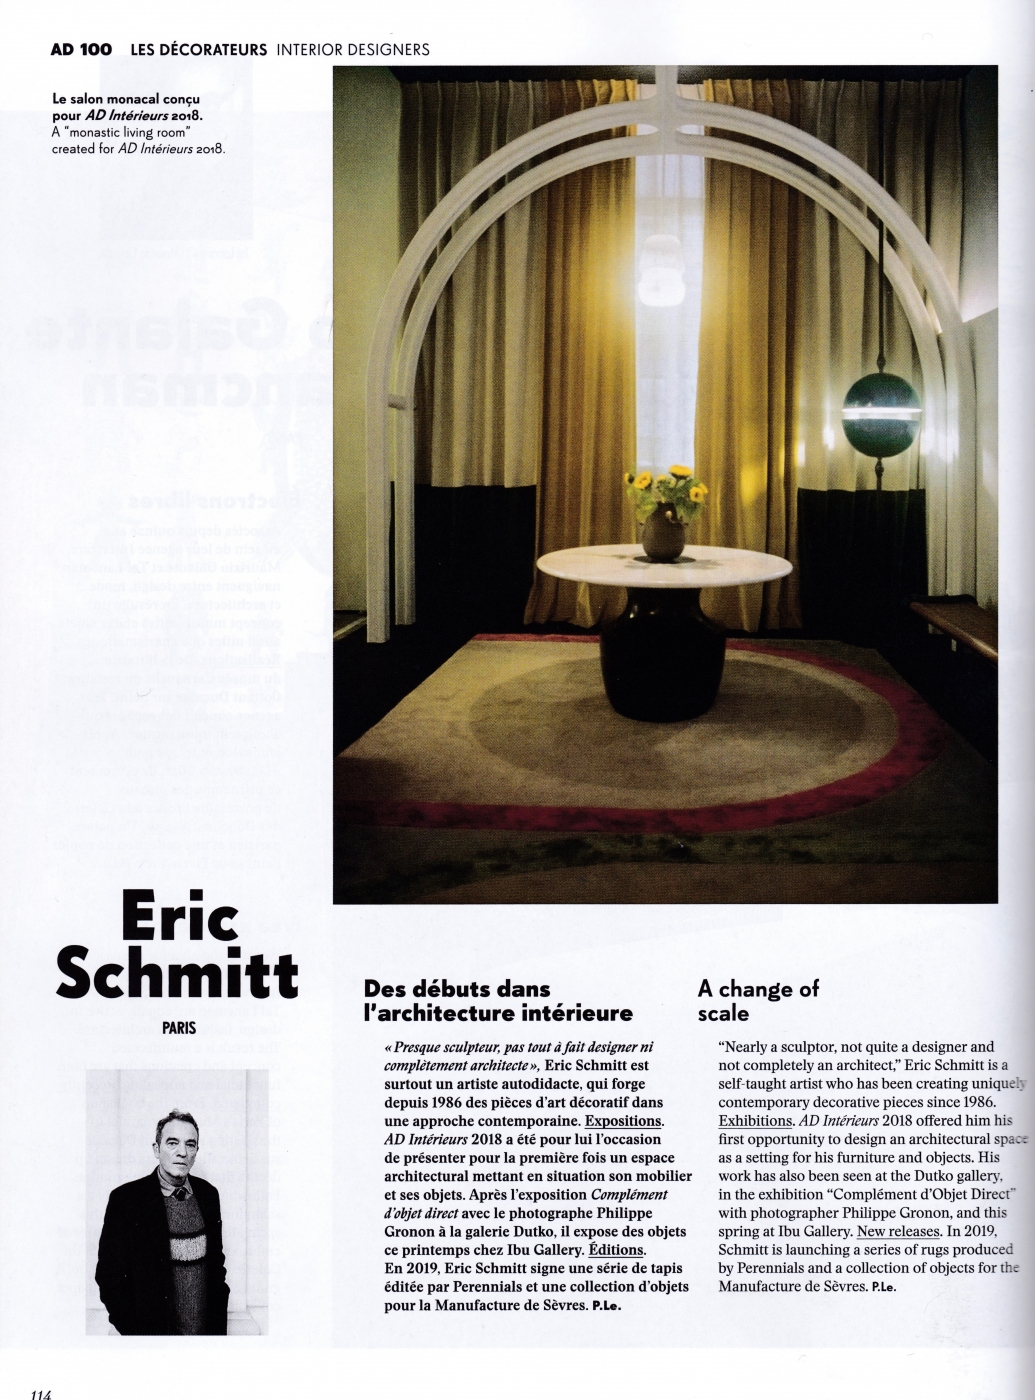 AD Architectural Digest 100